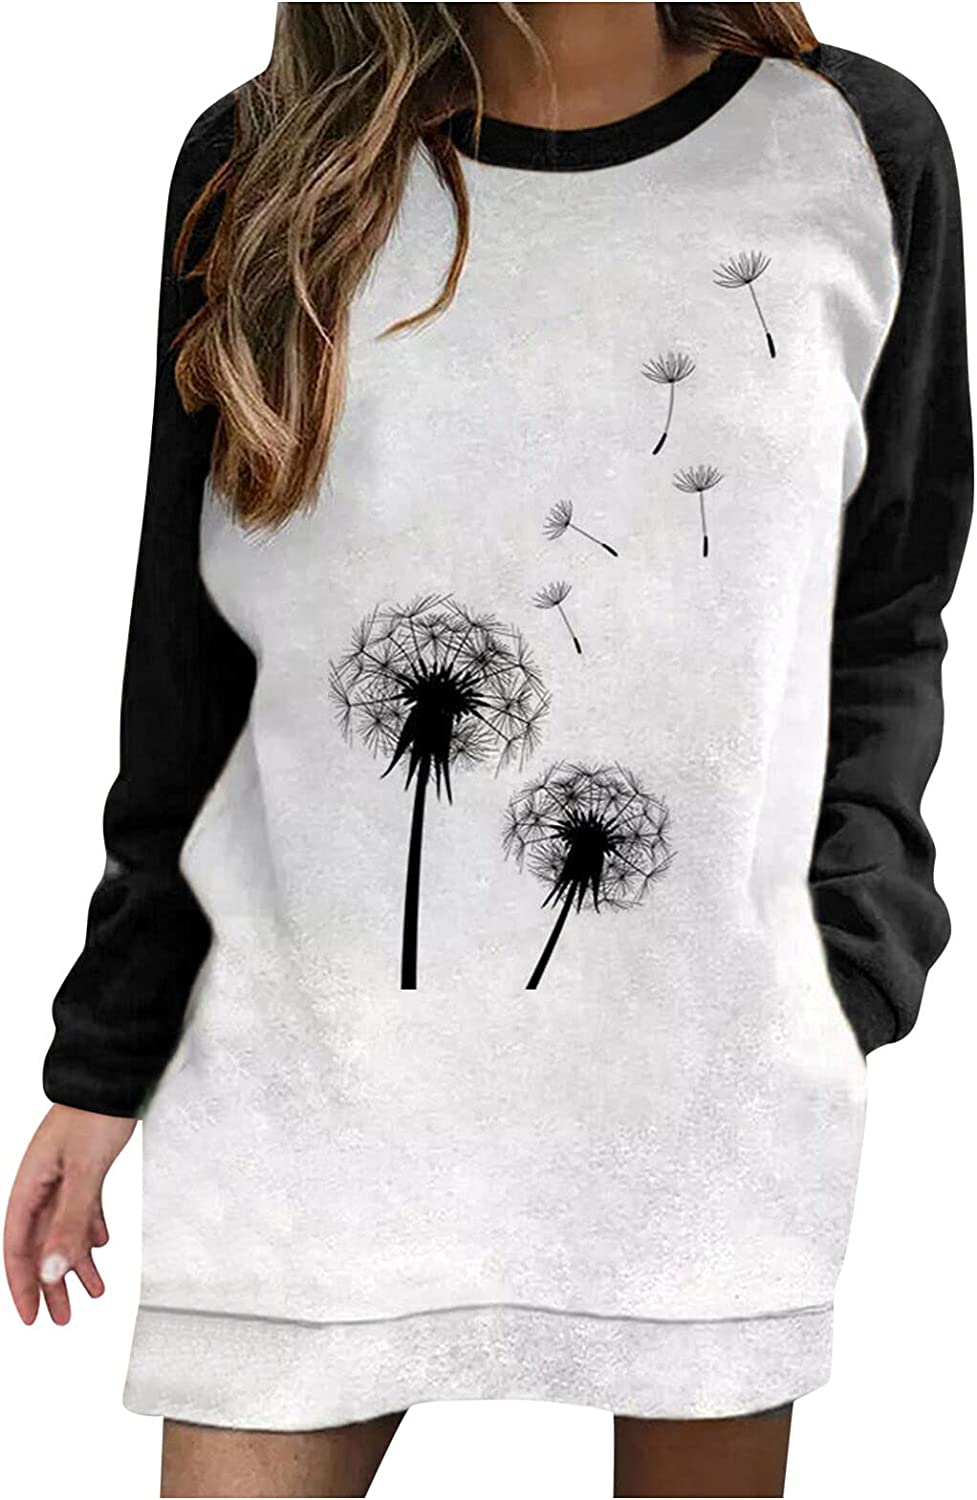 Aiouios Lightweight Sweatshirts for Women Graphic Dandelion Print Long Sleeve Splice Pullover Casual Loose Blouses Tops